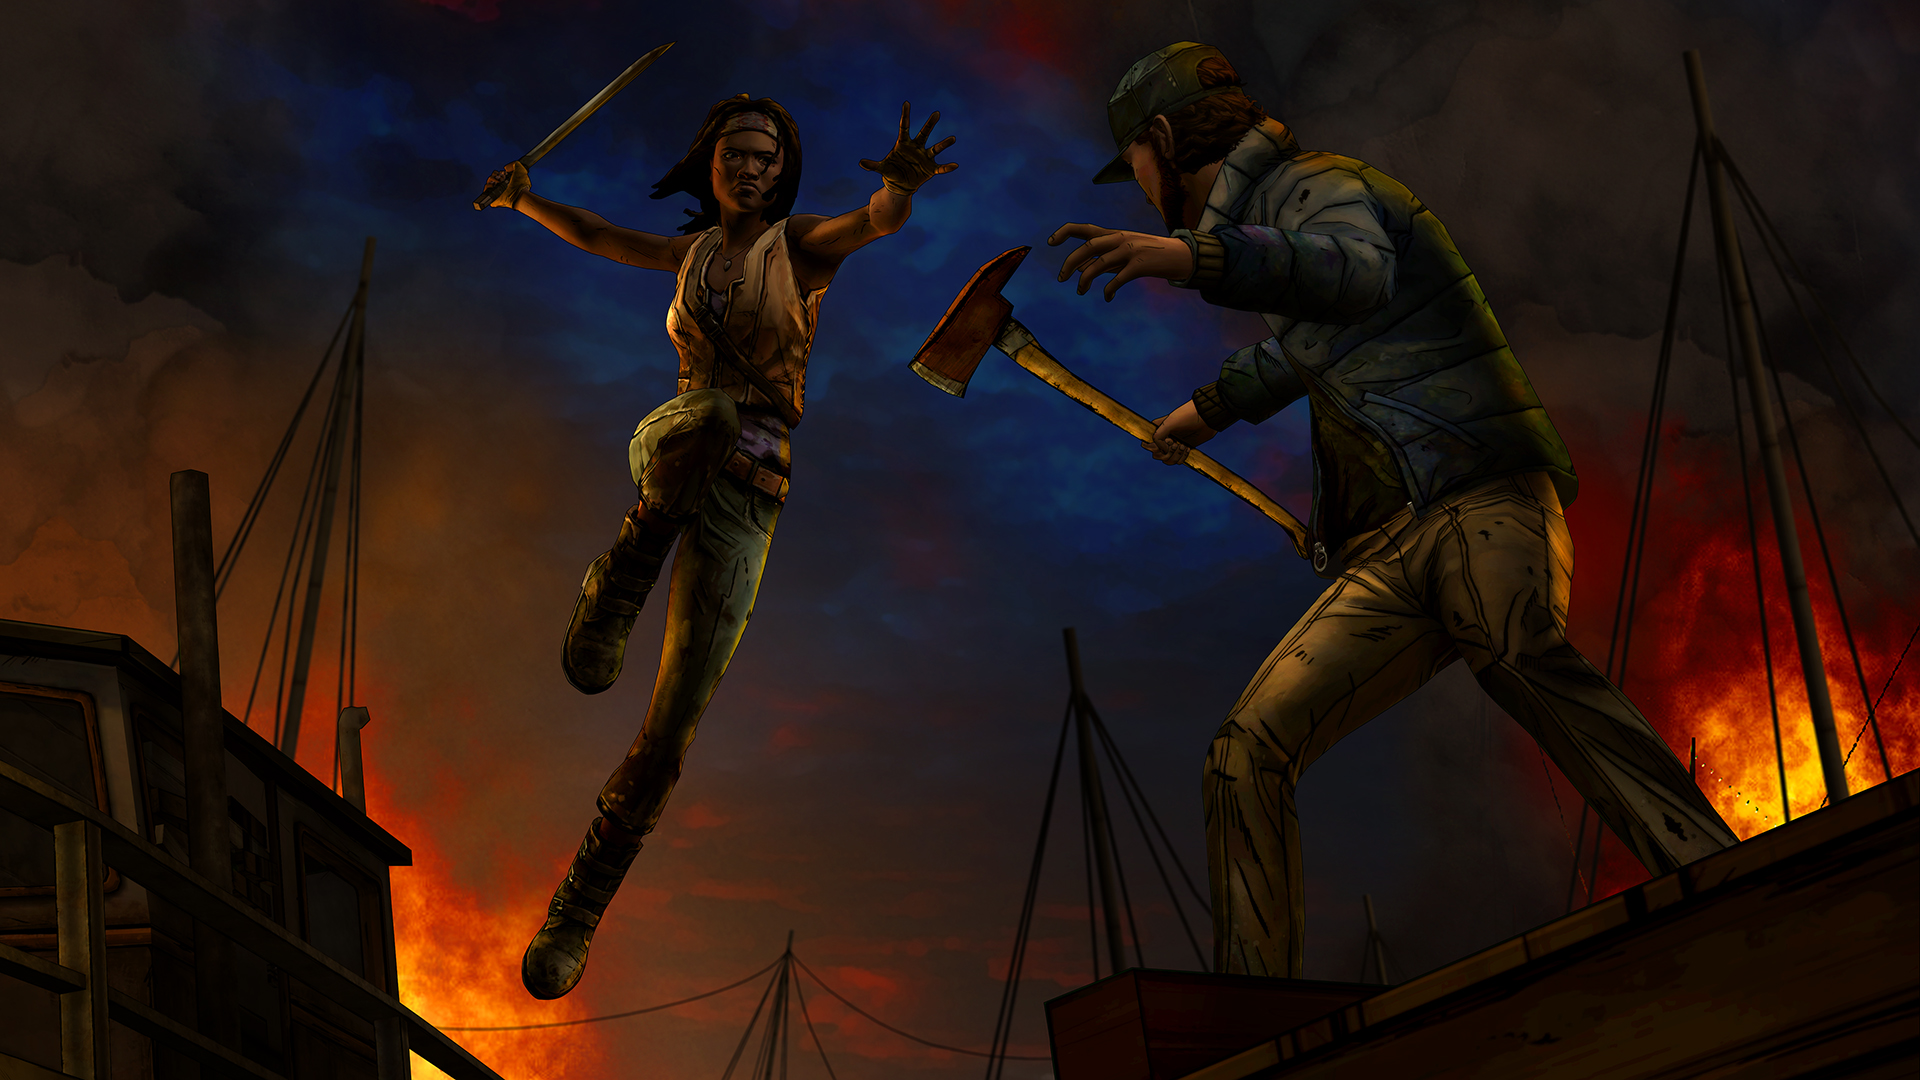 WDM 102 Axe 1920x1080 - New Screens And Trailer From Telltale's Michonne Series